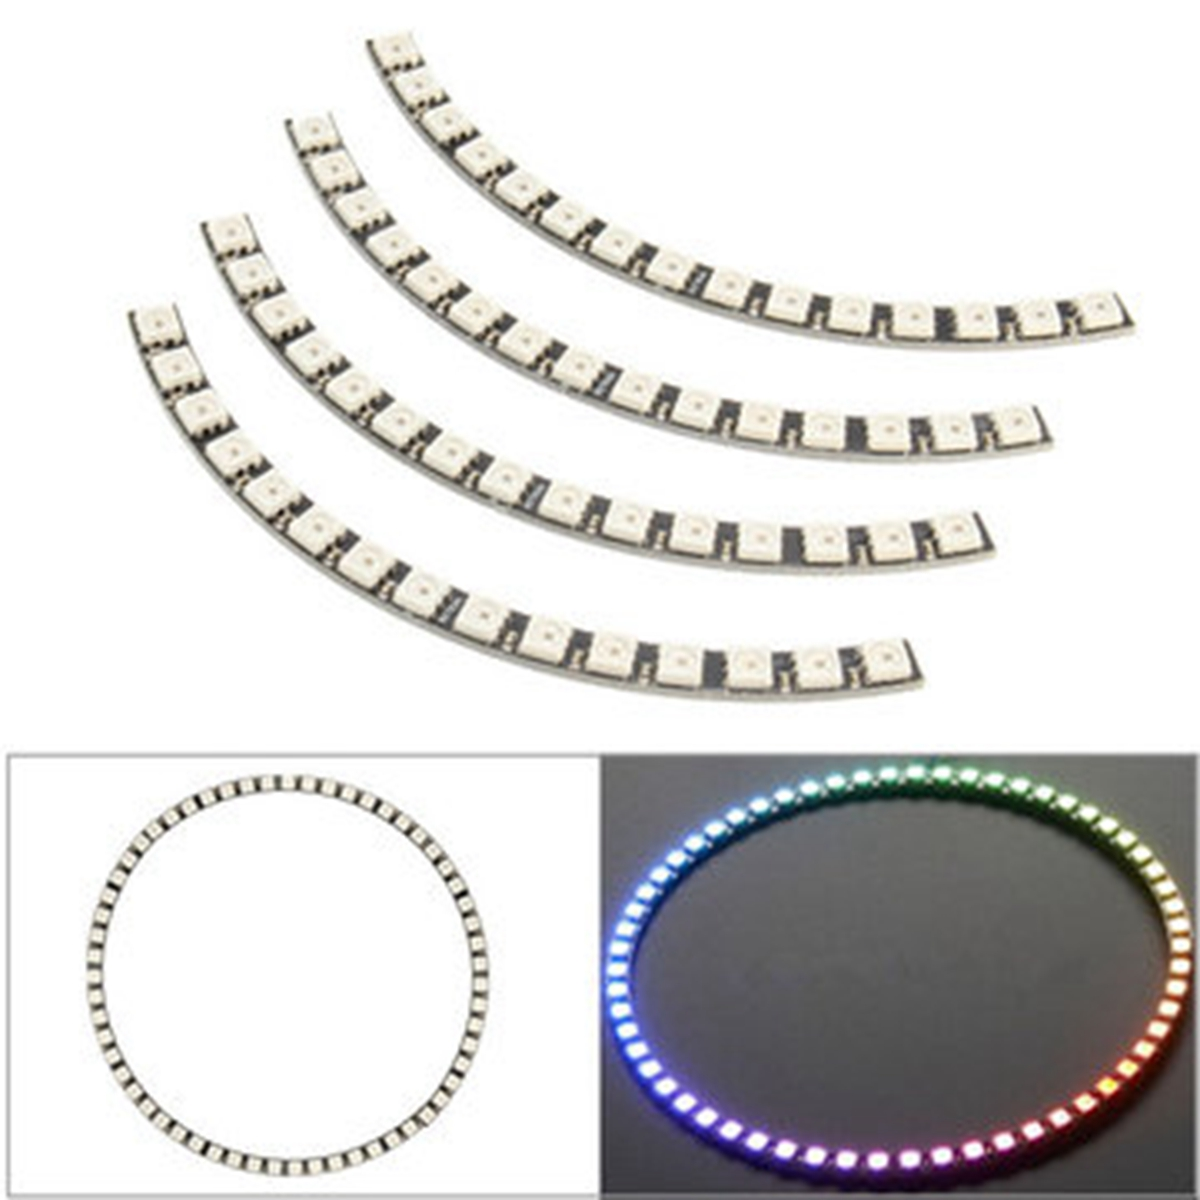 Jiguoor Ring LED Light Bulb Wall Clock 60LED WS2812 5050 SMD RGB LED Lamp Panel for Arduino 5V 1A keyes 5050 rgb led module for offical arduino products red silver